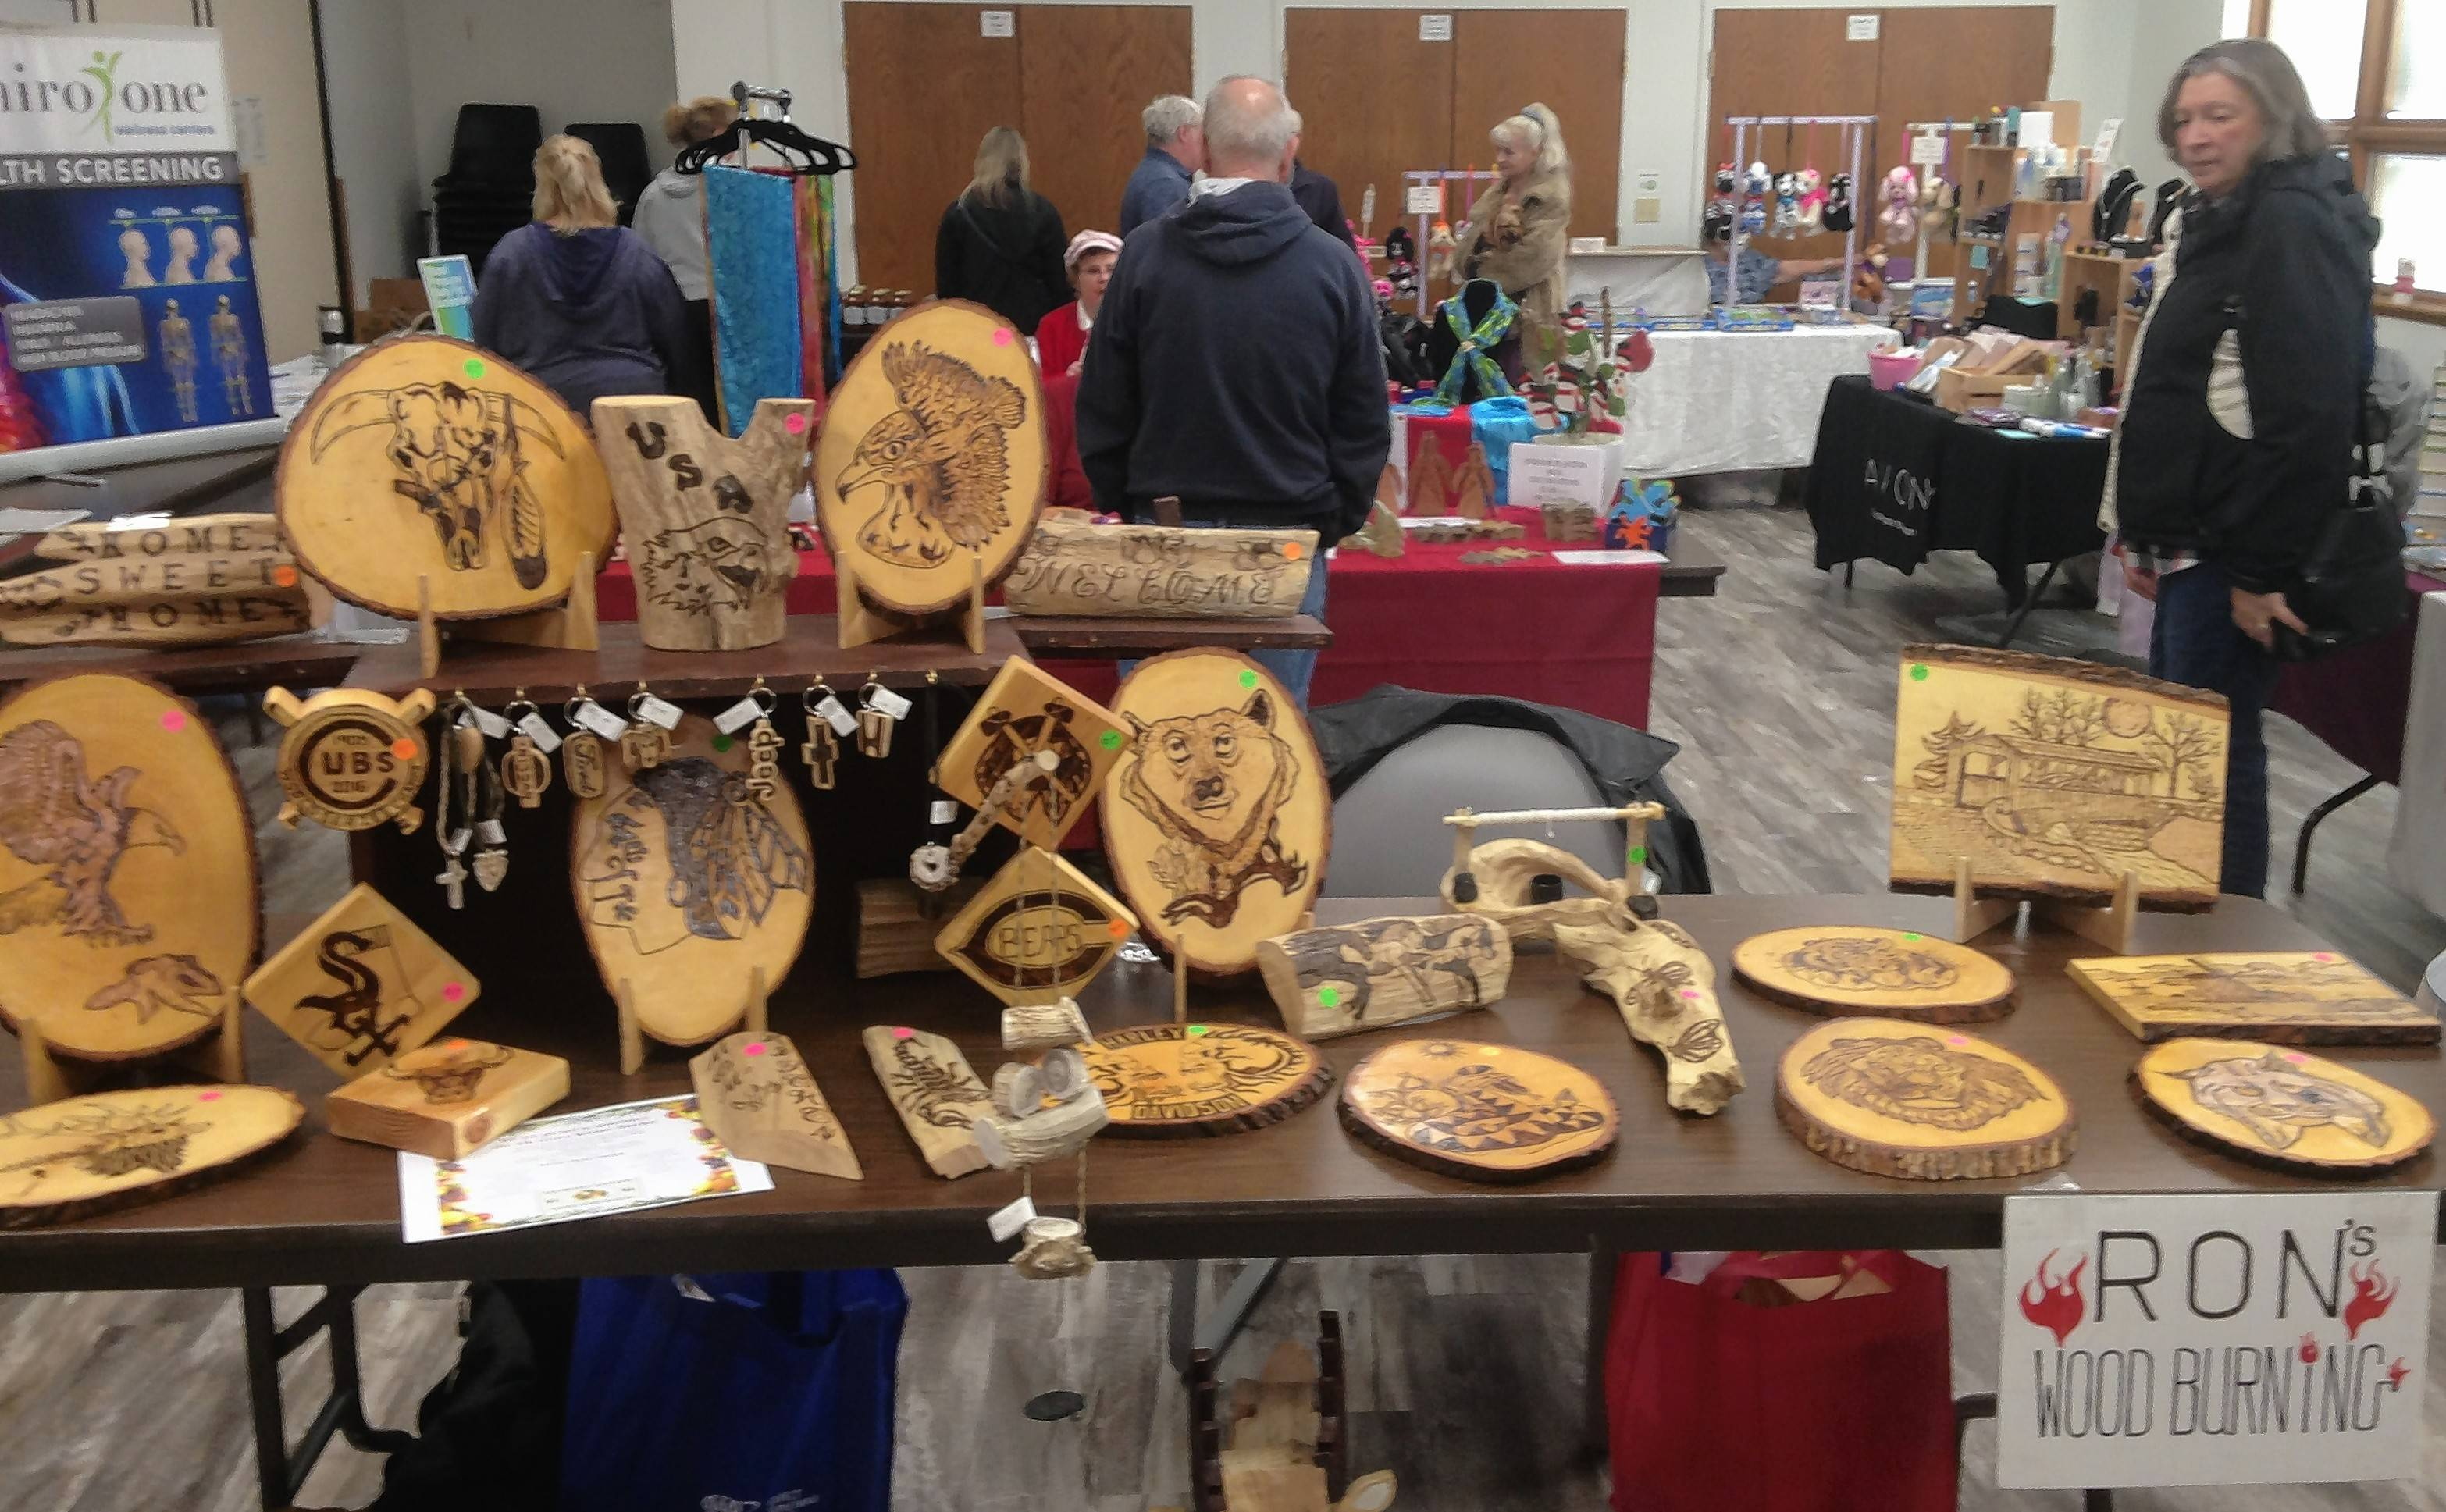 Home decor items were available at Ron's Wood Burning Saturday at the Elk Grove Winter Market in Christus Victor Church. The market will operate on the first and third Saturdays of the month through April.